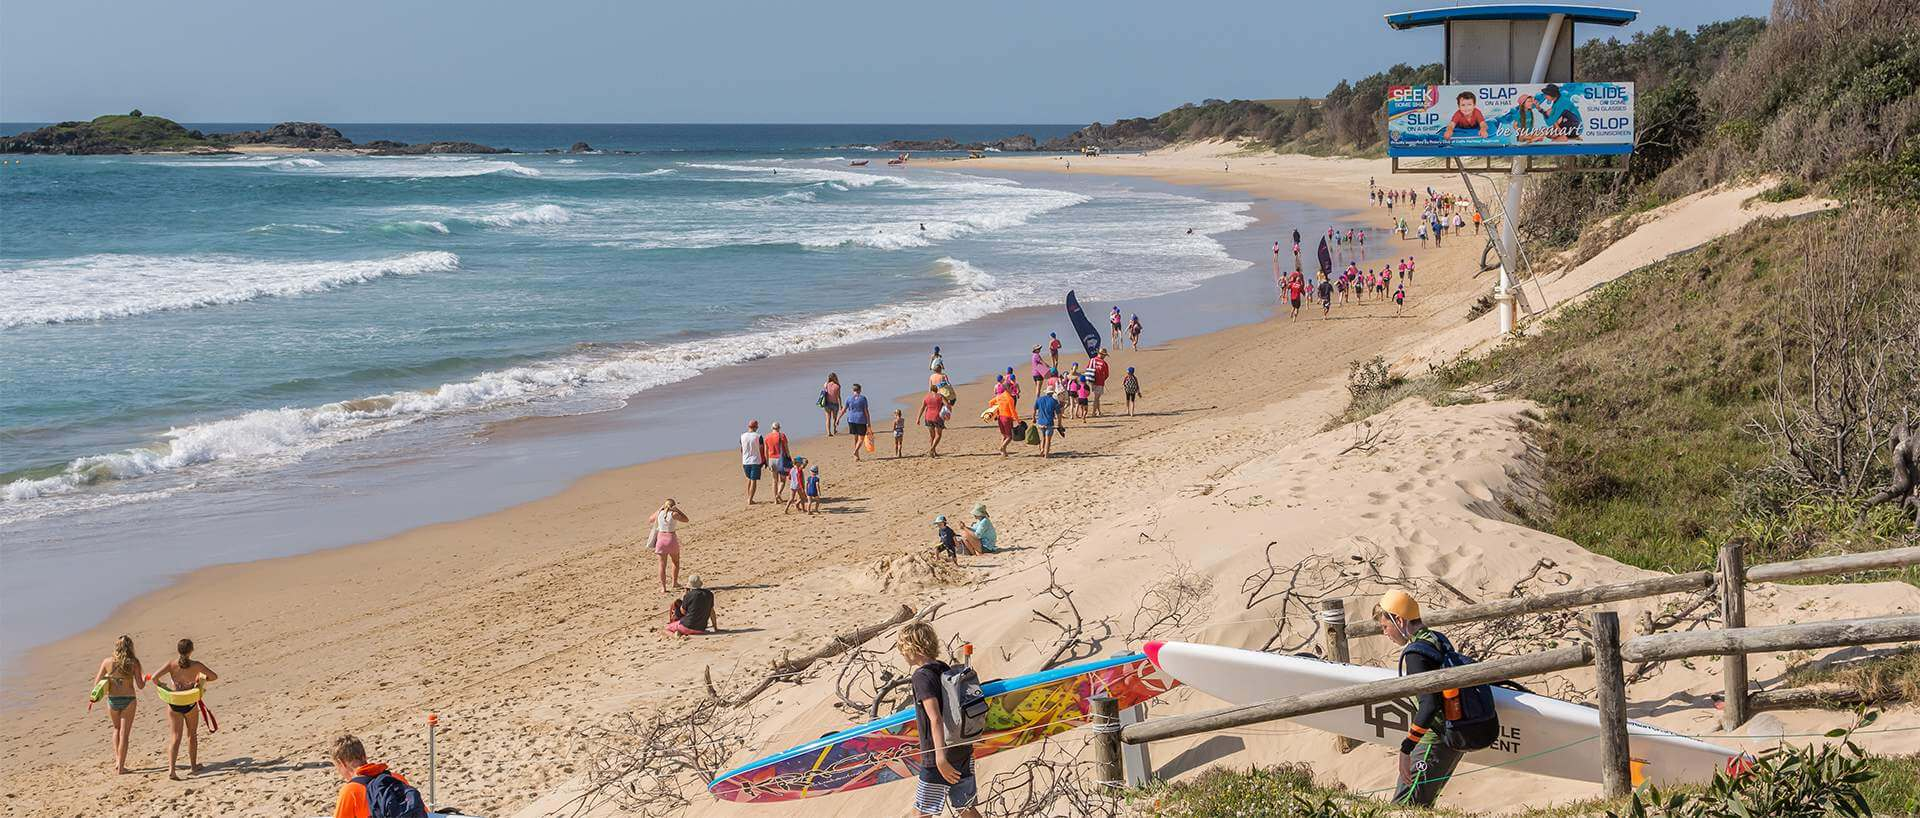 Sawtell Surf Life Saving Club - Feature Image 4